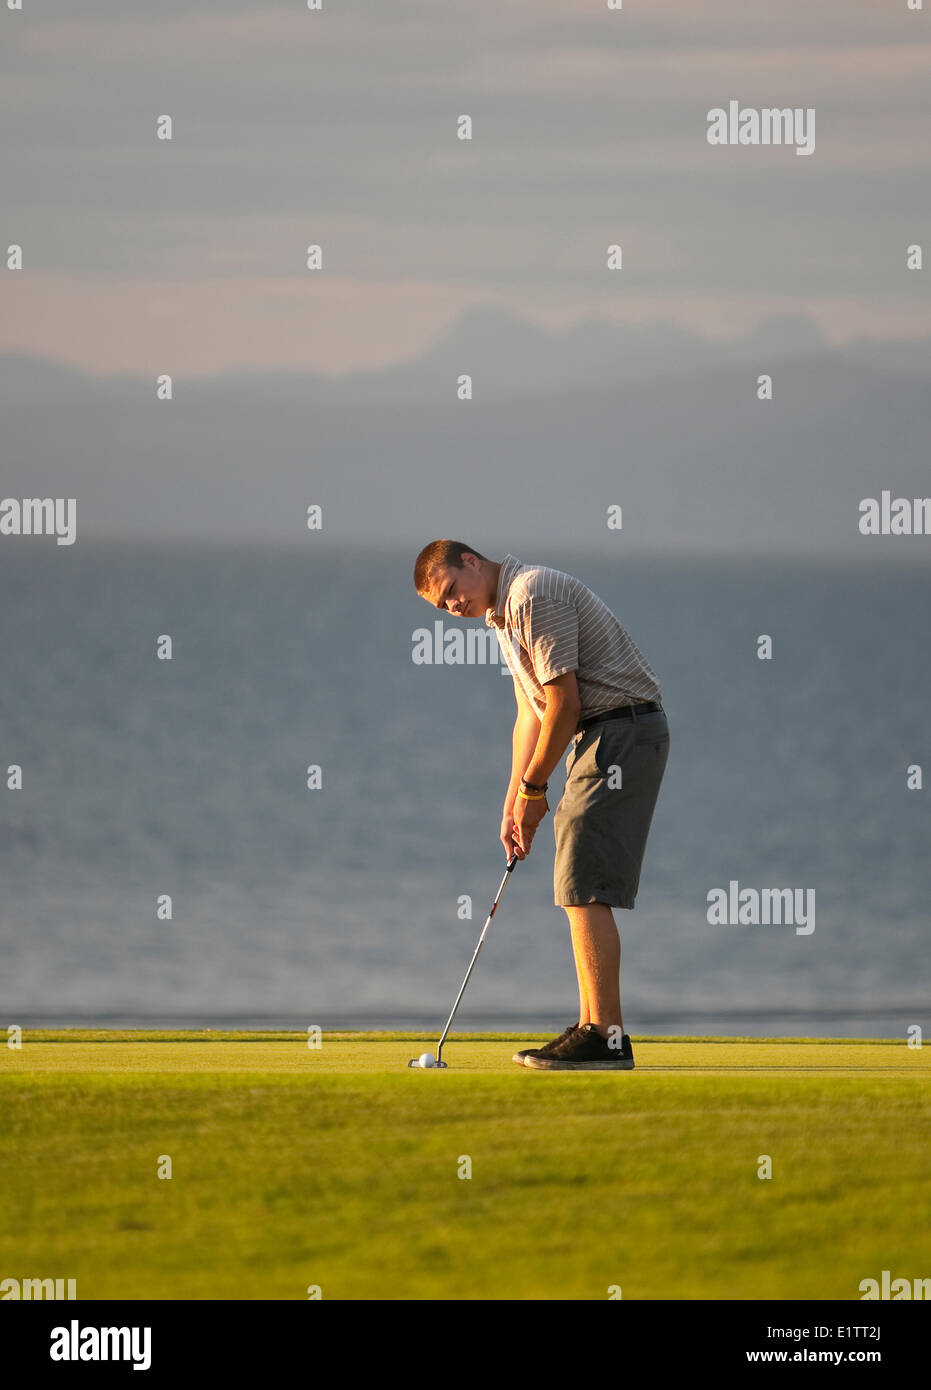 A young golfer lines up his final putt,  Qualicum Beach, Central Vancouver Island, British Columbia, Canada - Stock Image